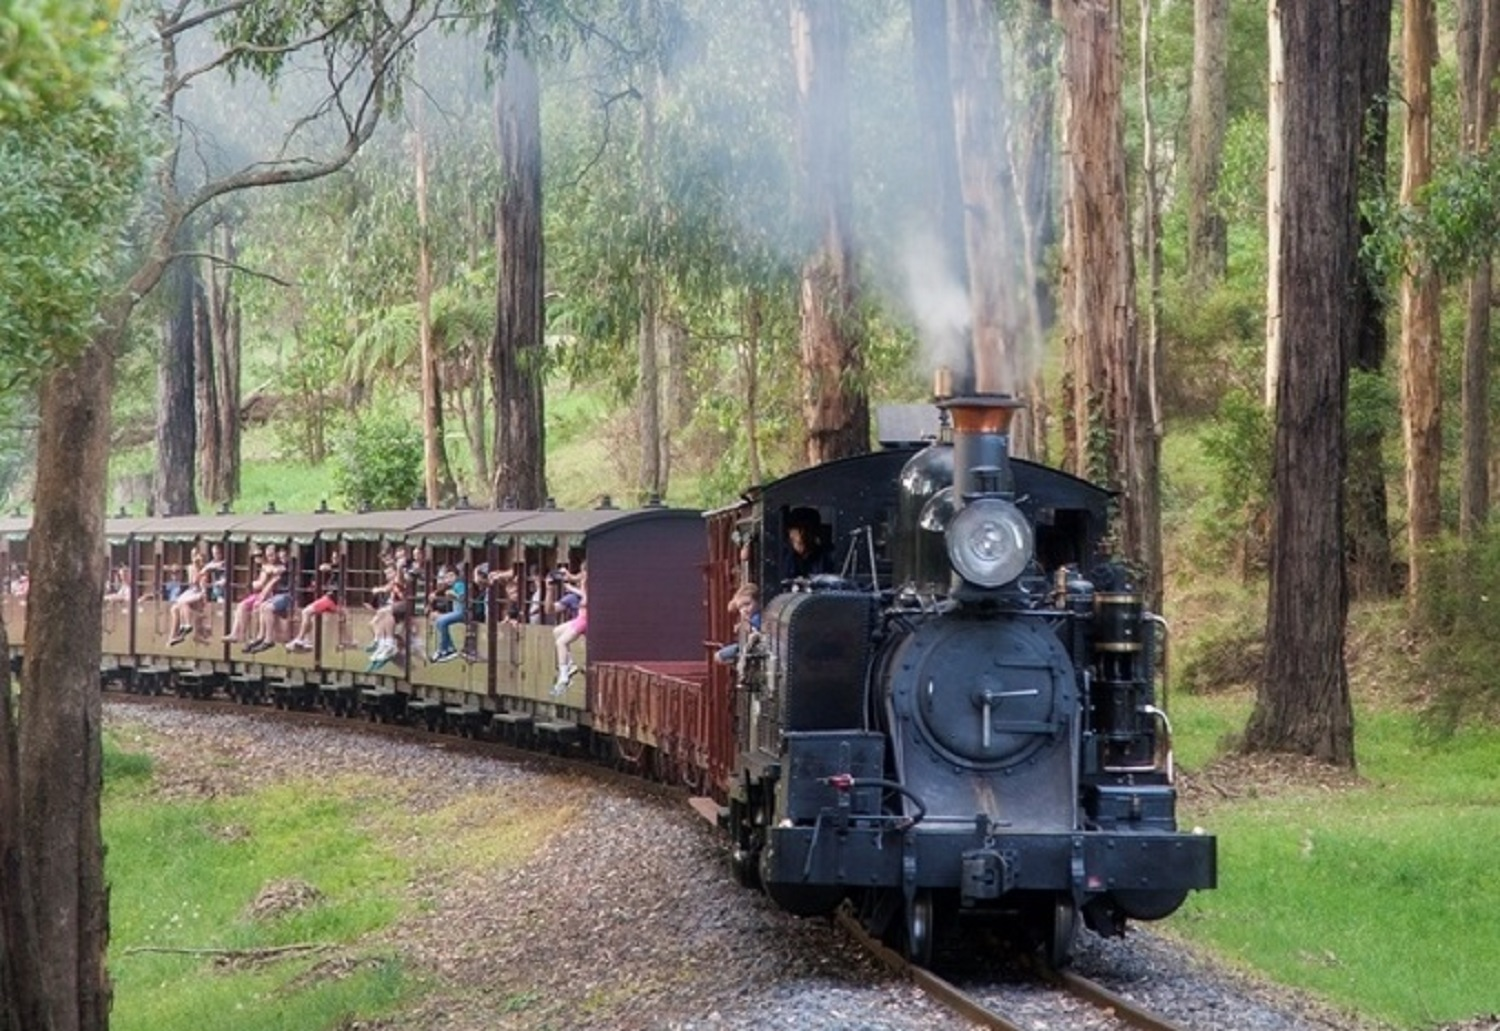 famous puffing billy steamtrain